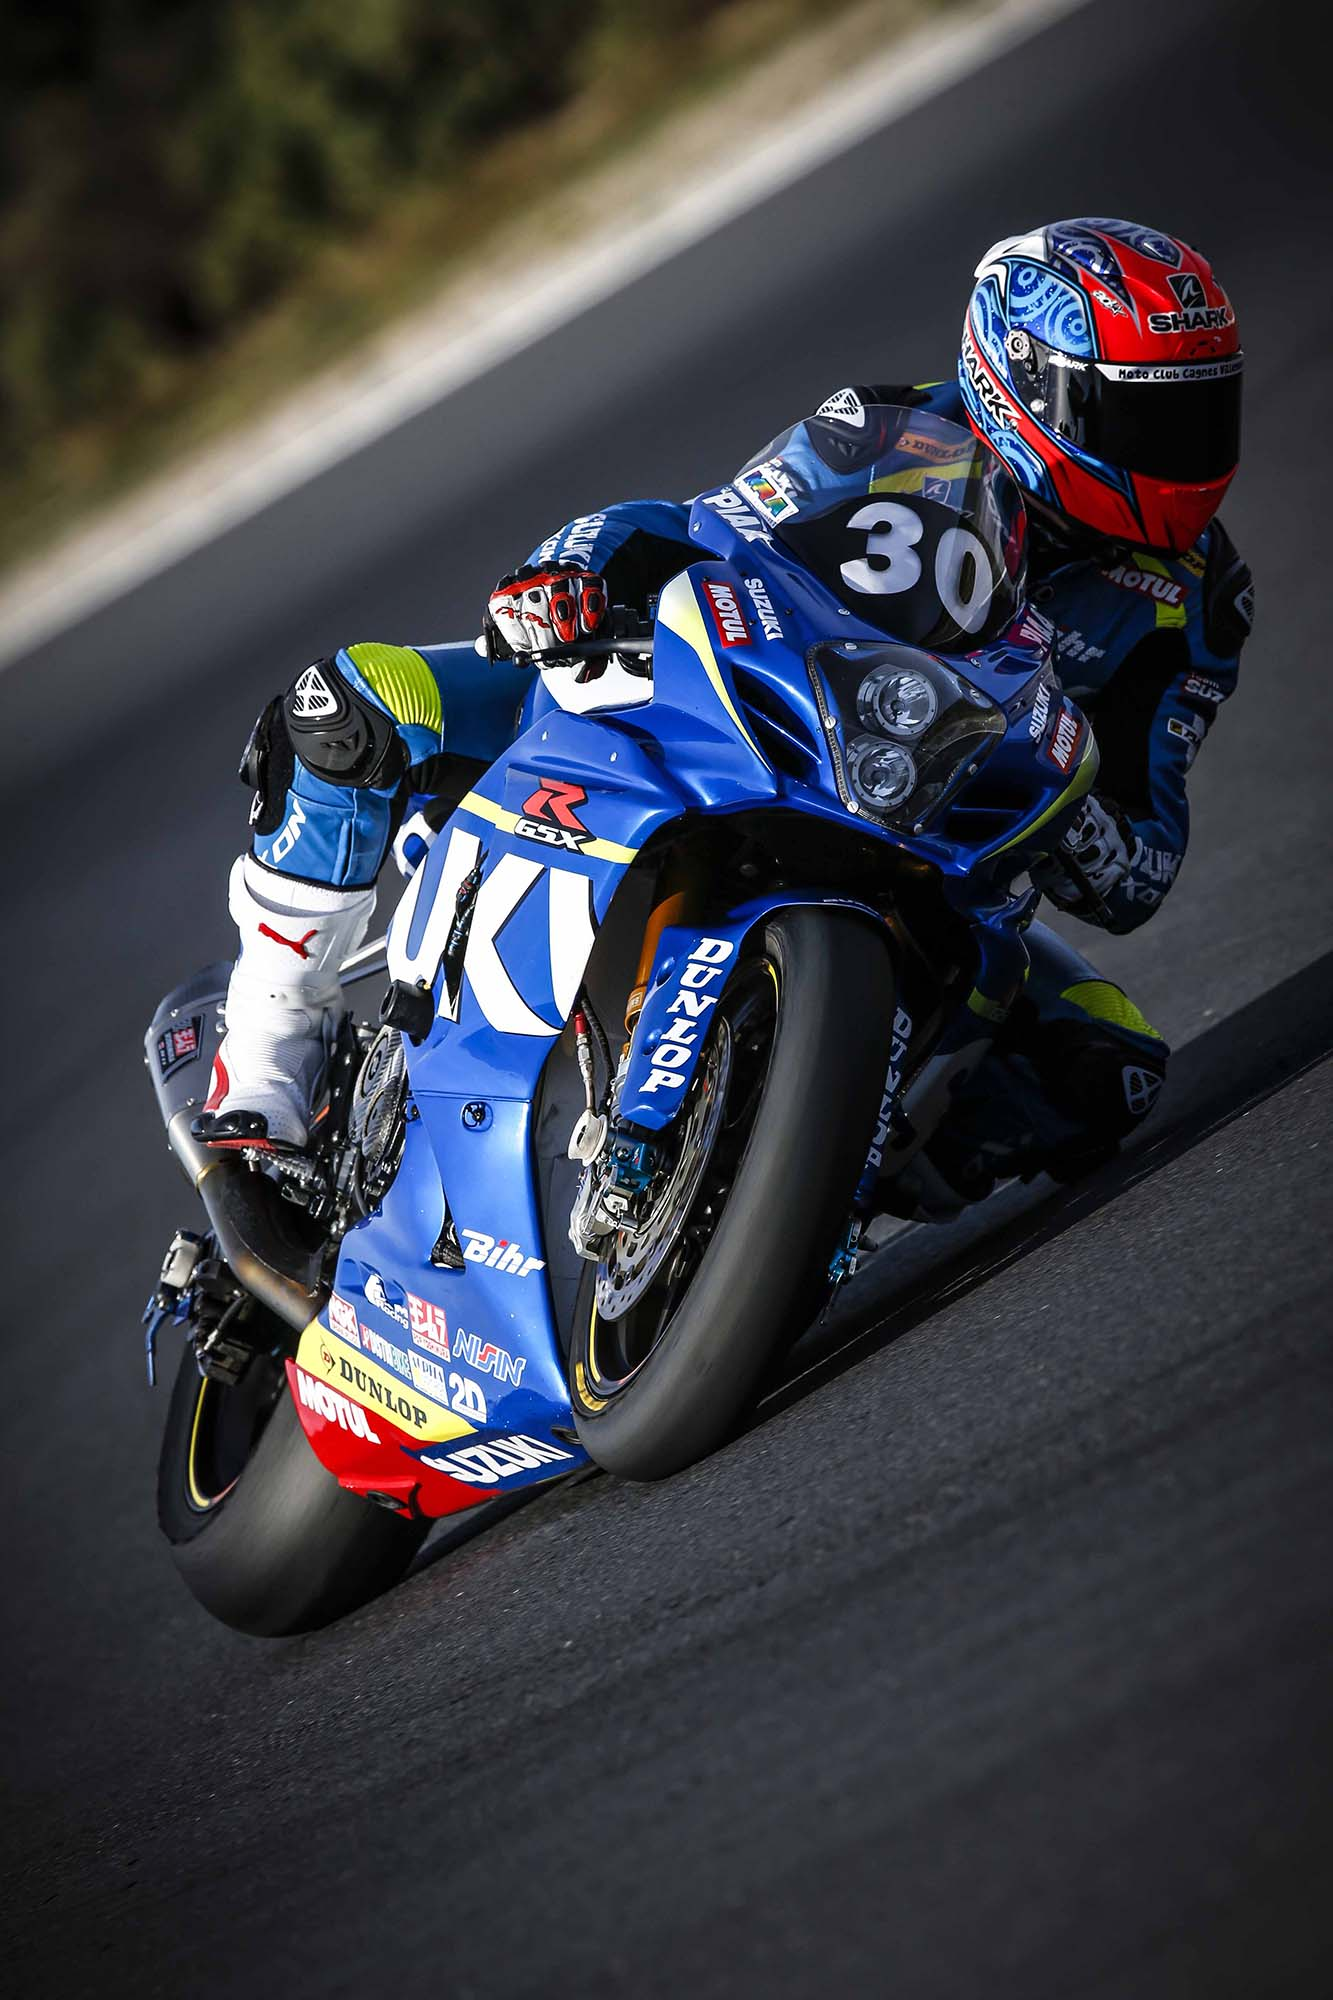 Photos: 2015 Suzuki GSX-R1000 Endurance Race Bike